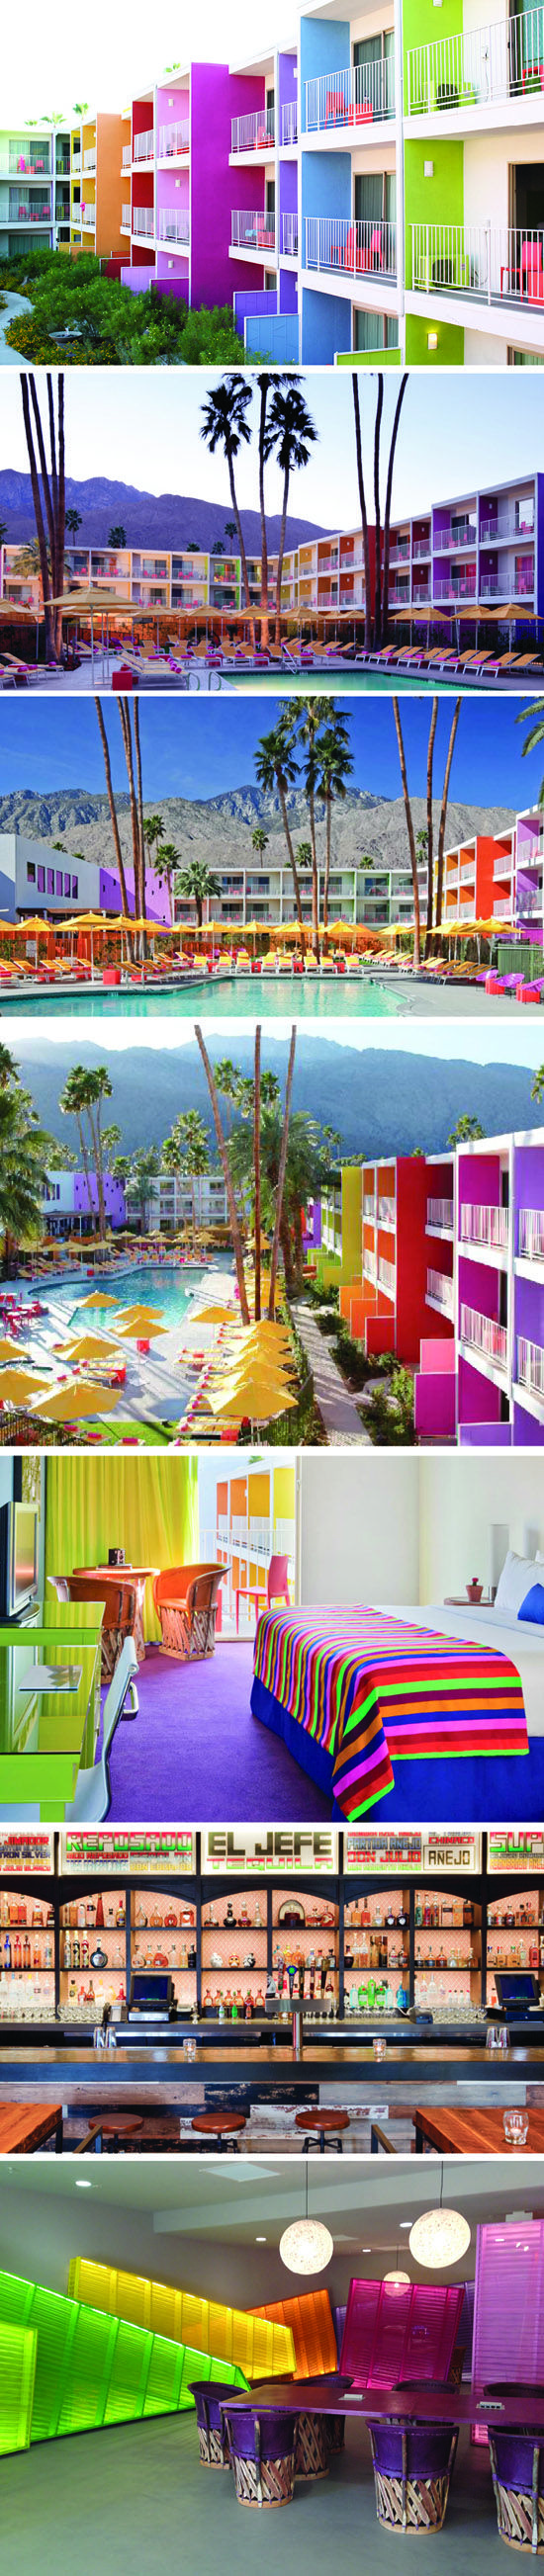 Saguaro Hotel in Palm Springs for your Lady friend weekend getaway.